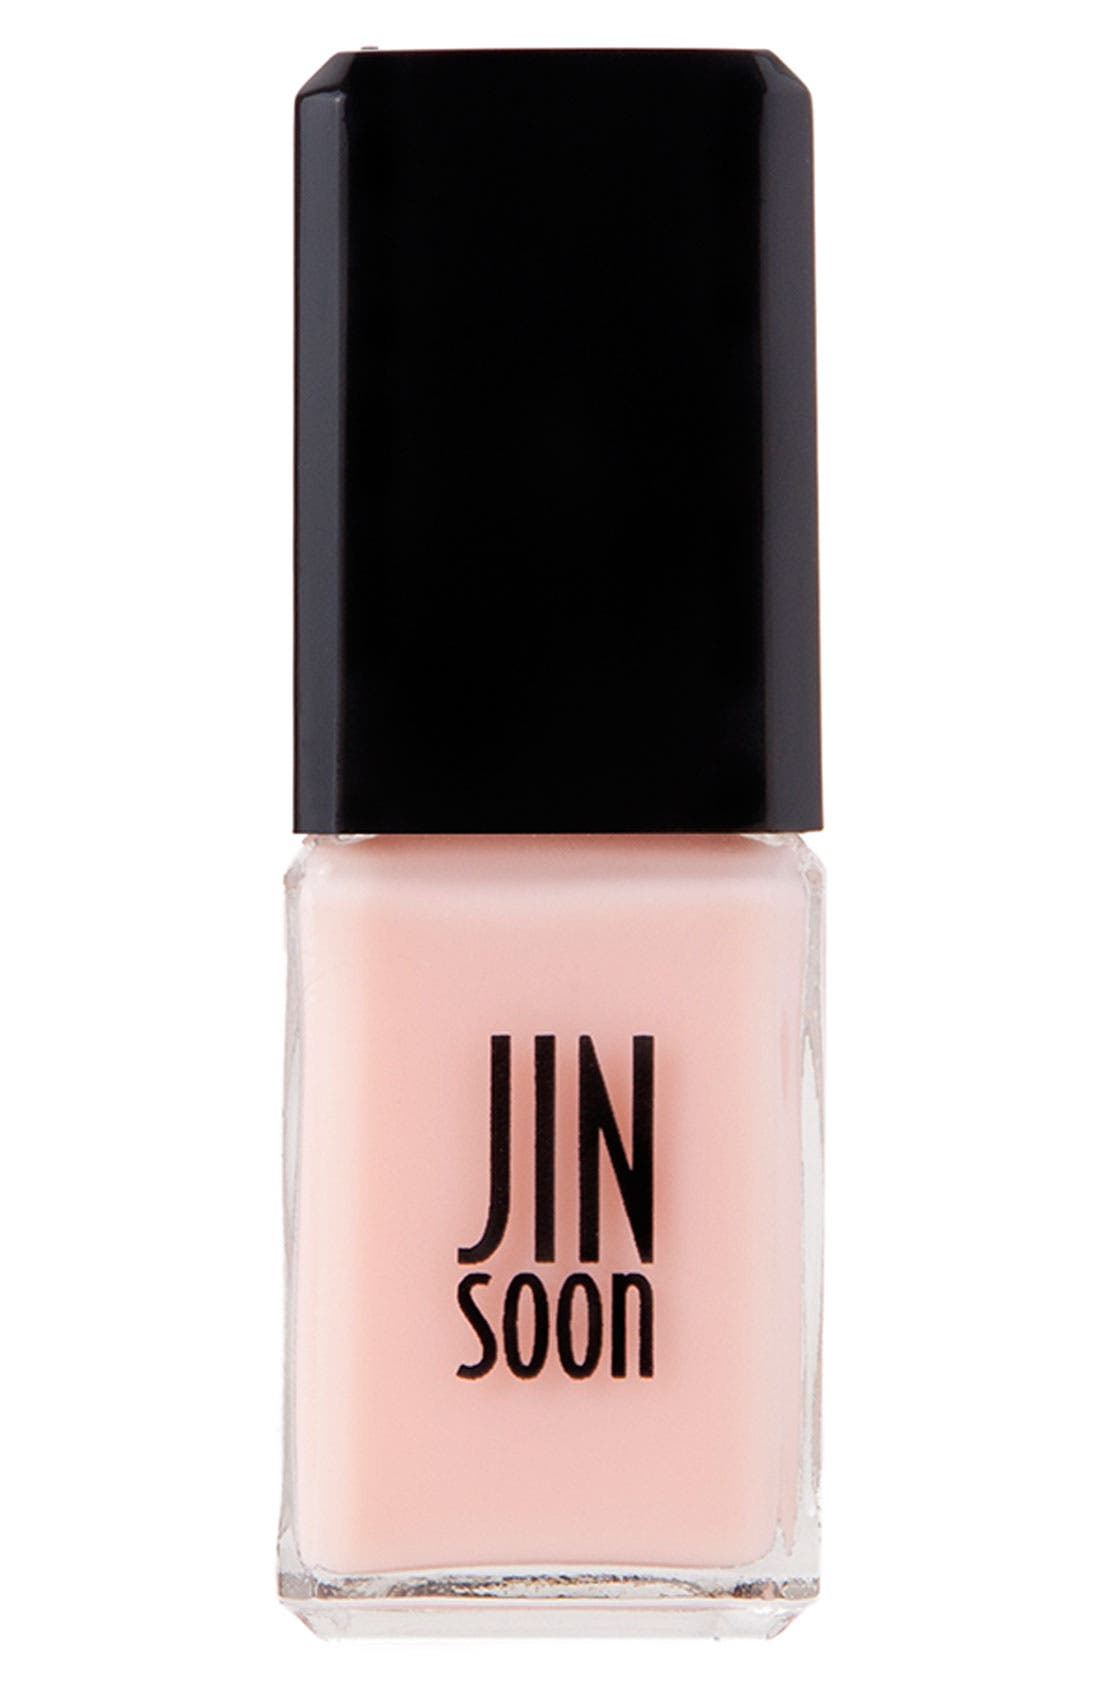 JINsoon 'Muse' Nail Lacquer